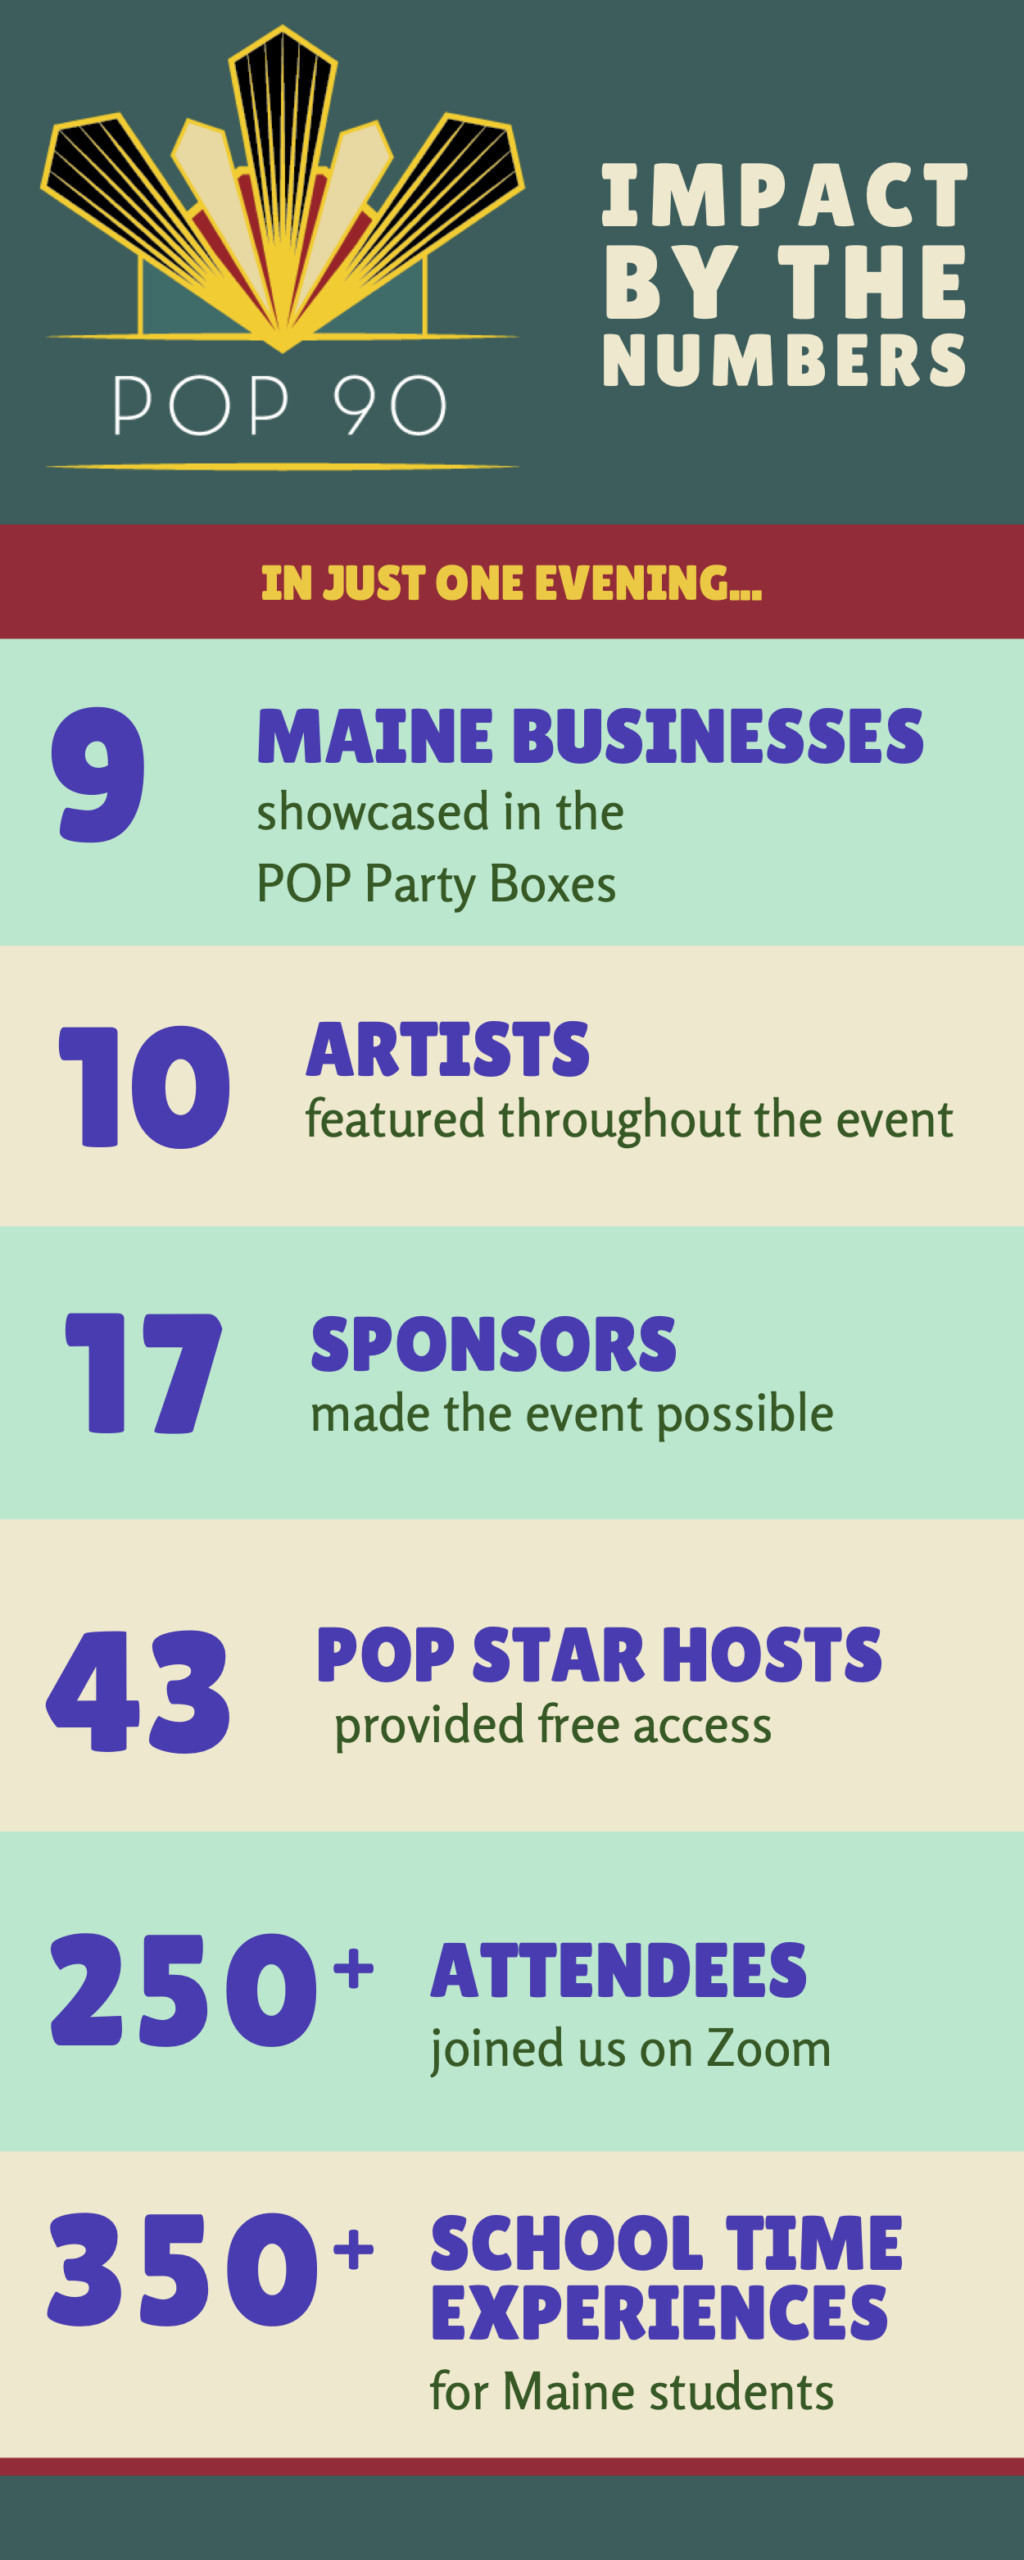 Infographic - POP 90 Impact by the Numbers - In just one evening... 9 Maine Businesses showcased in the POP Party Boxes. 10 Artists featured throughout the event. 17 Sponsors made the event possible. 43 POP Star Hosts Provided free access. 250+ Attendees joined us on Zoom. 350+ School Time experiences for Maine Students.